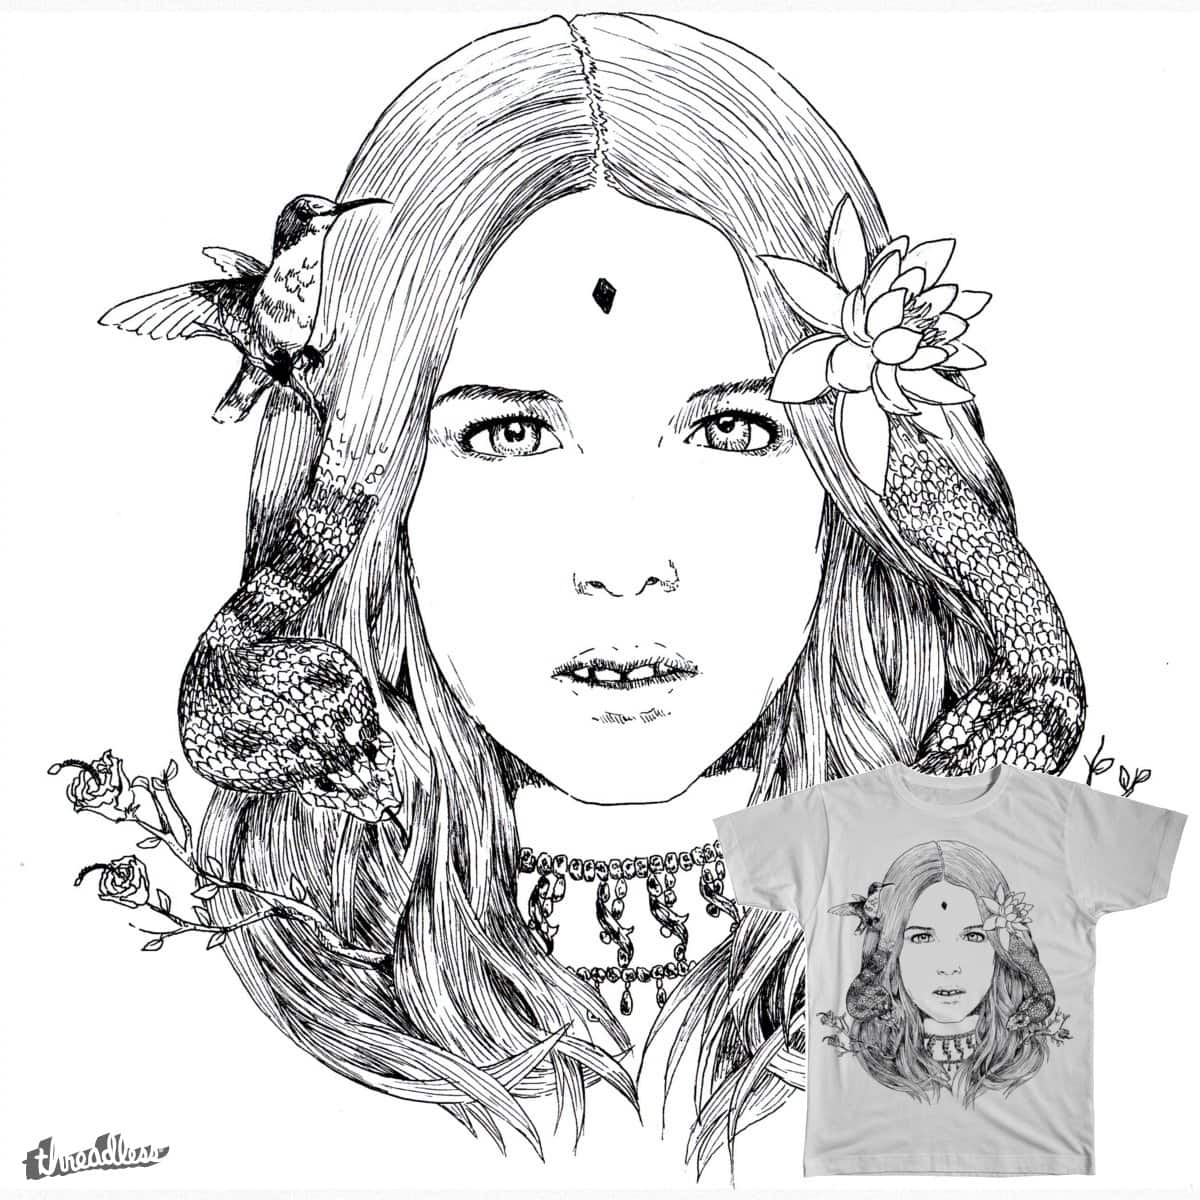 Indian Girl by antovic on Threadless